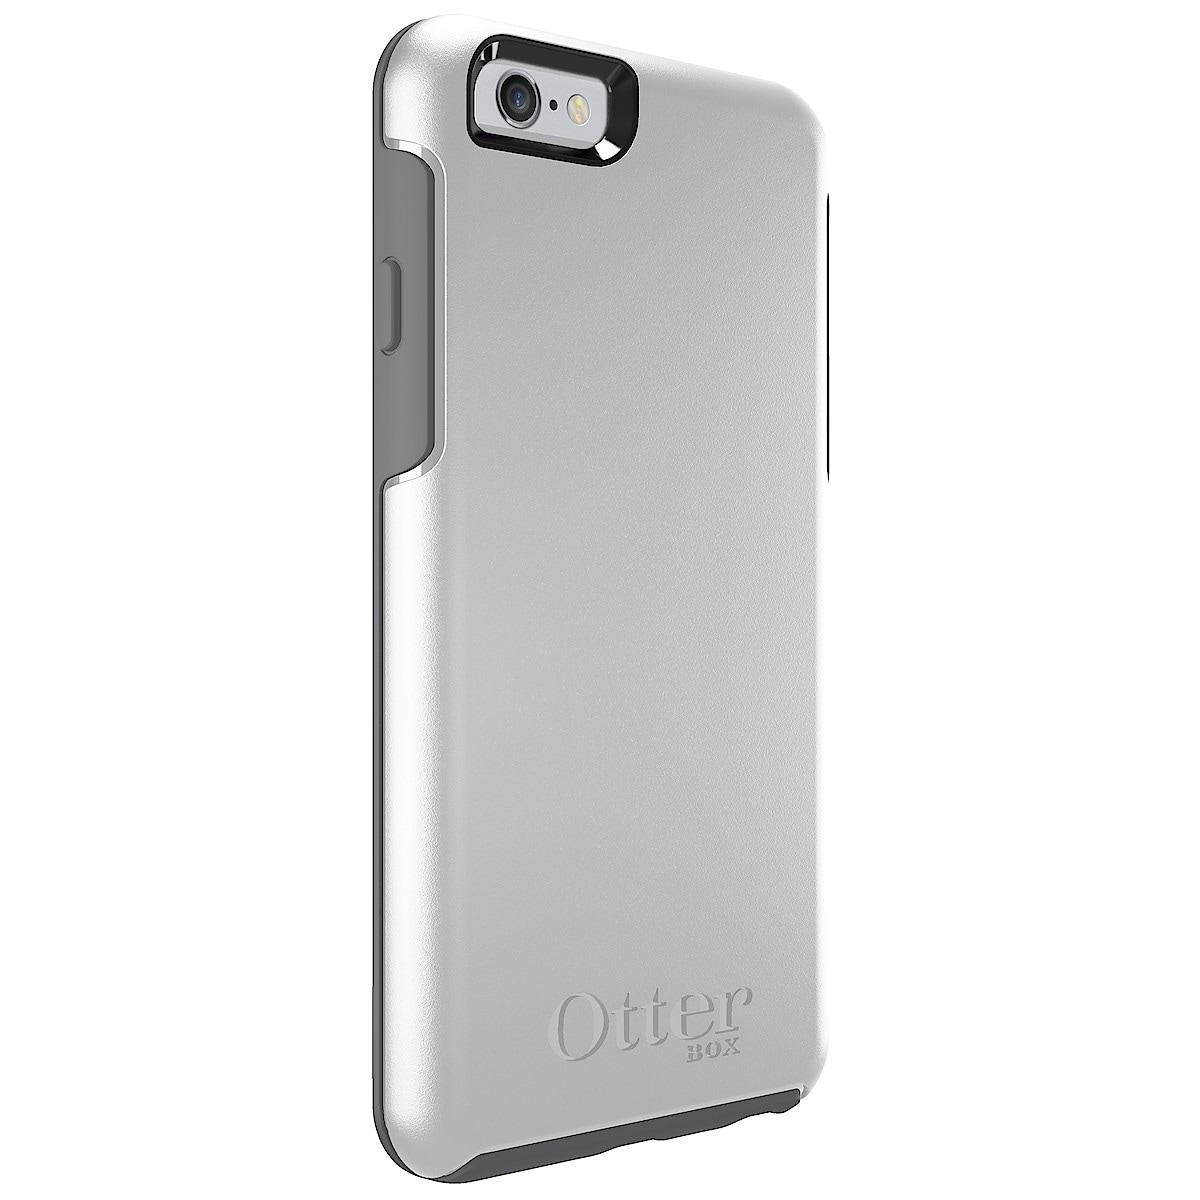 Otterbox Symmetry Mobile Phone Case for iPhone 6